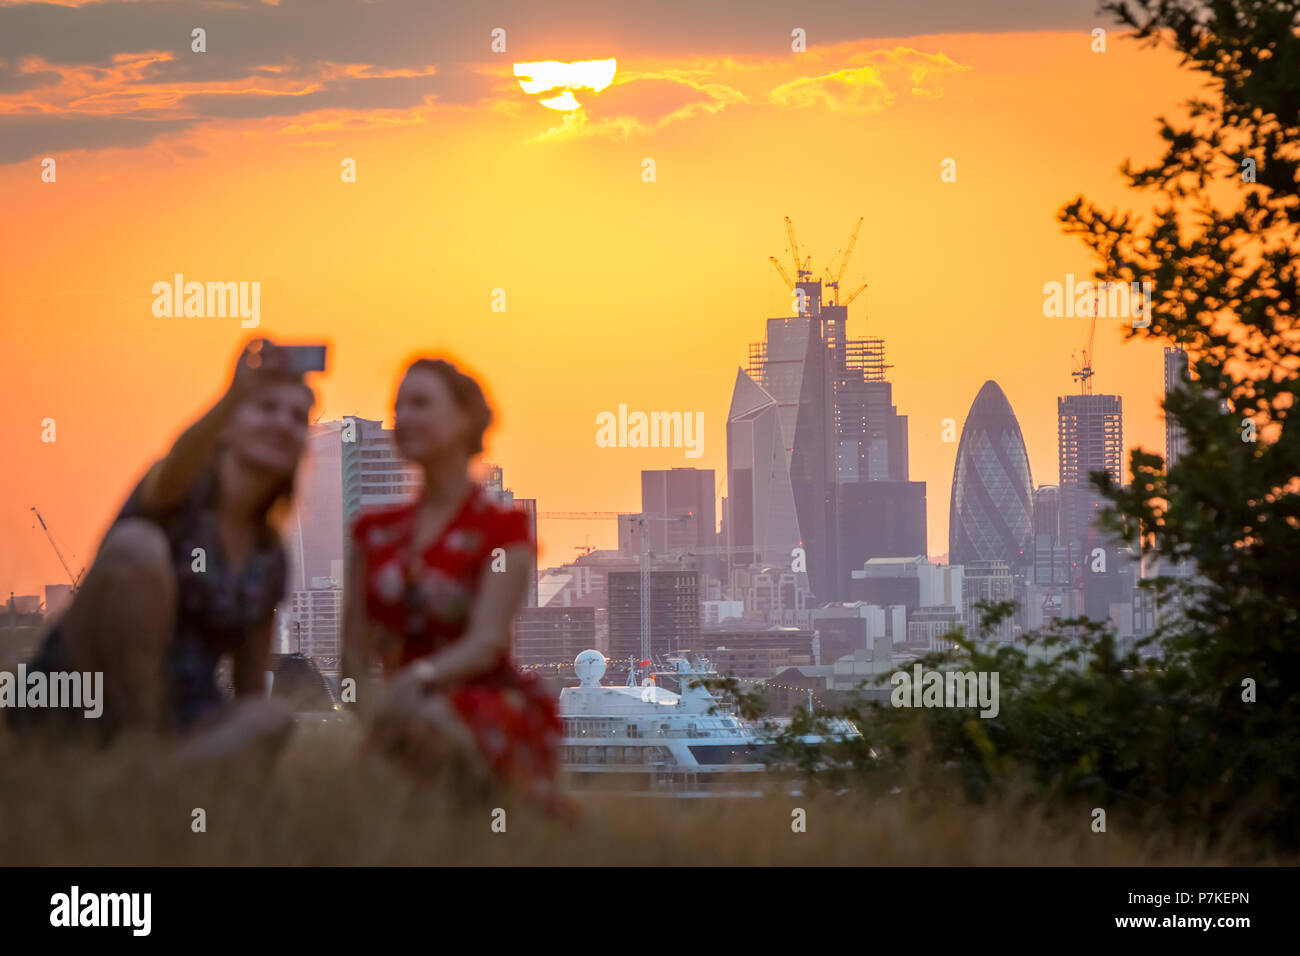 London, UK. 7th July, 2018. UK Weather: Sunset from the top of Greenwich Park ending another summer heatwave day reaching highs of 28C in the city. Credit: Guy Corbishley/Alamy Live News Stock Photo